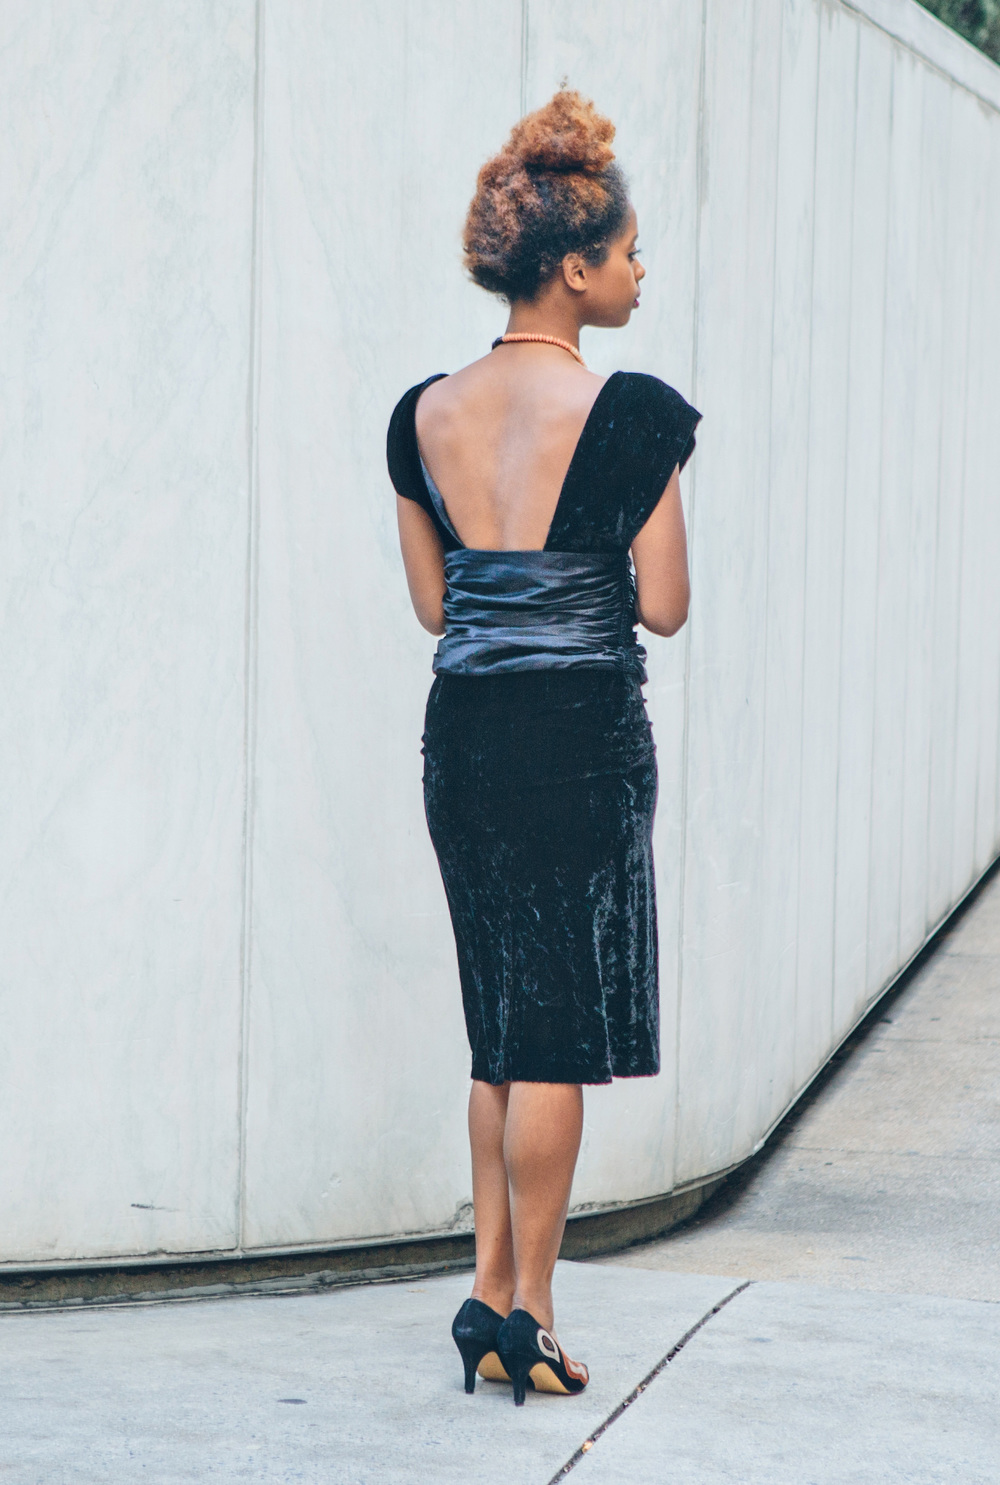 90s black velvet cocktail dress with beautiful open back ($36) | beaded necklace ($21) | suede patterned heels ($27)